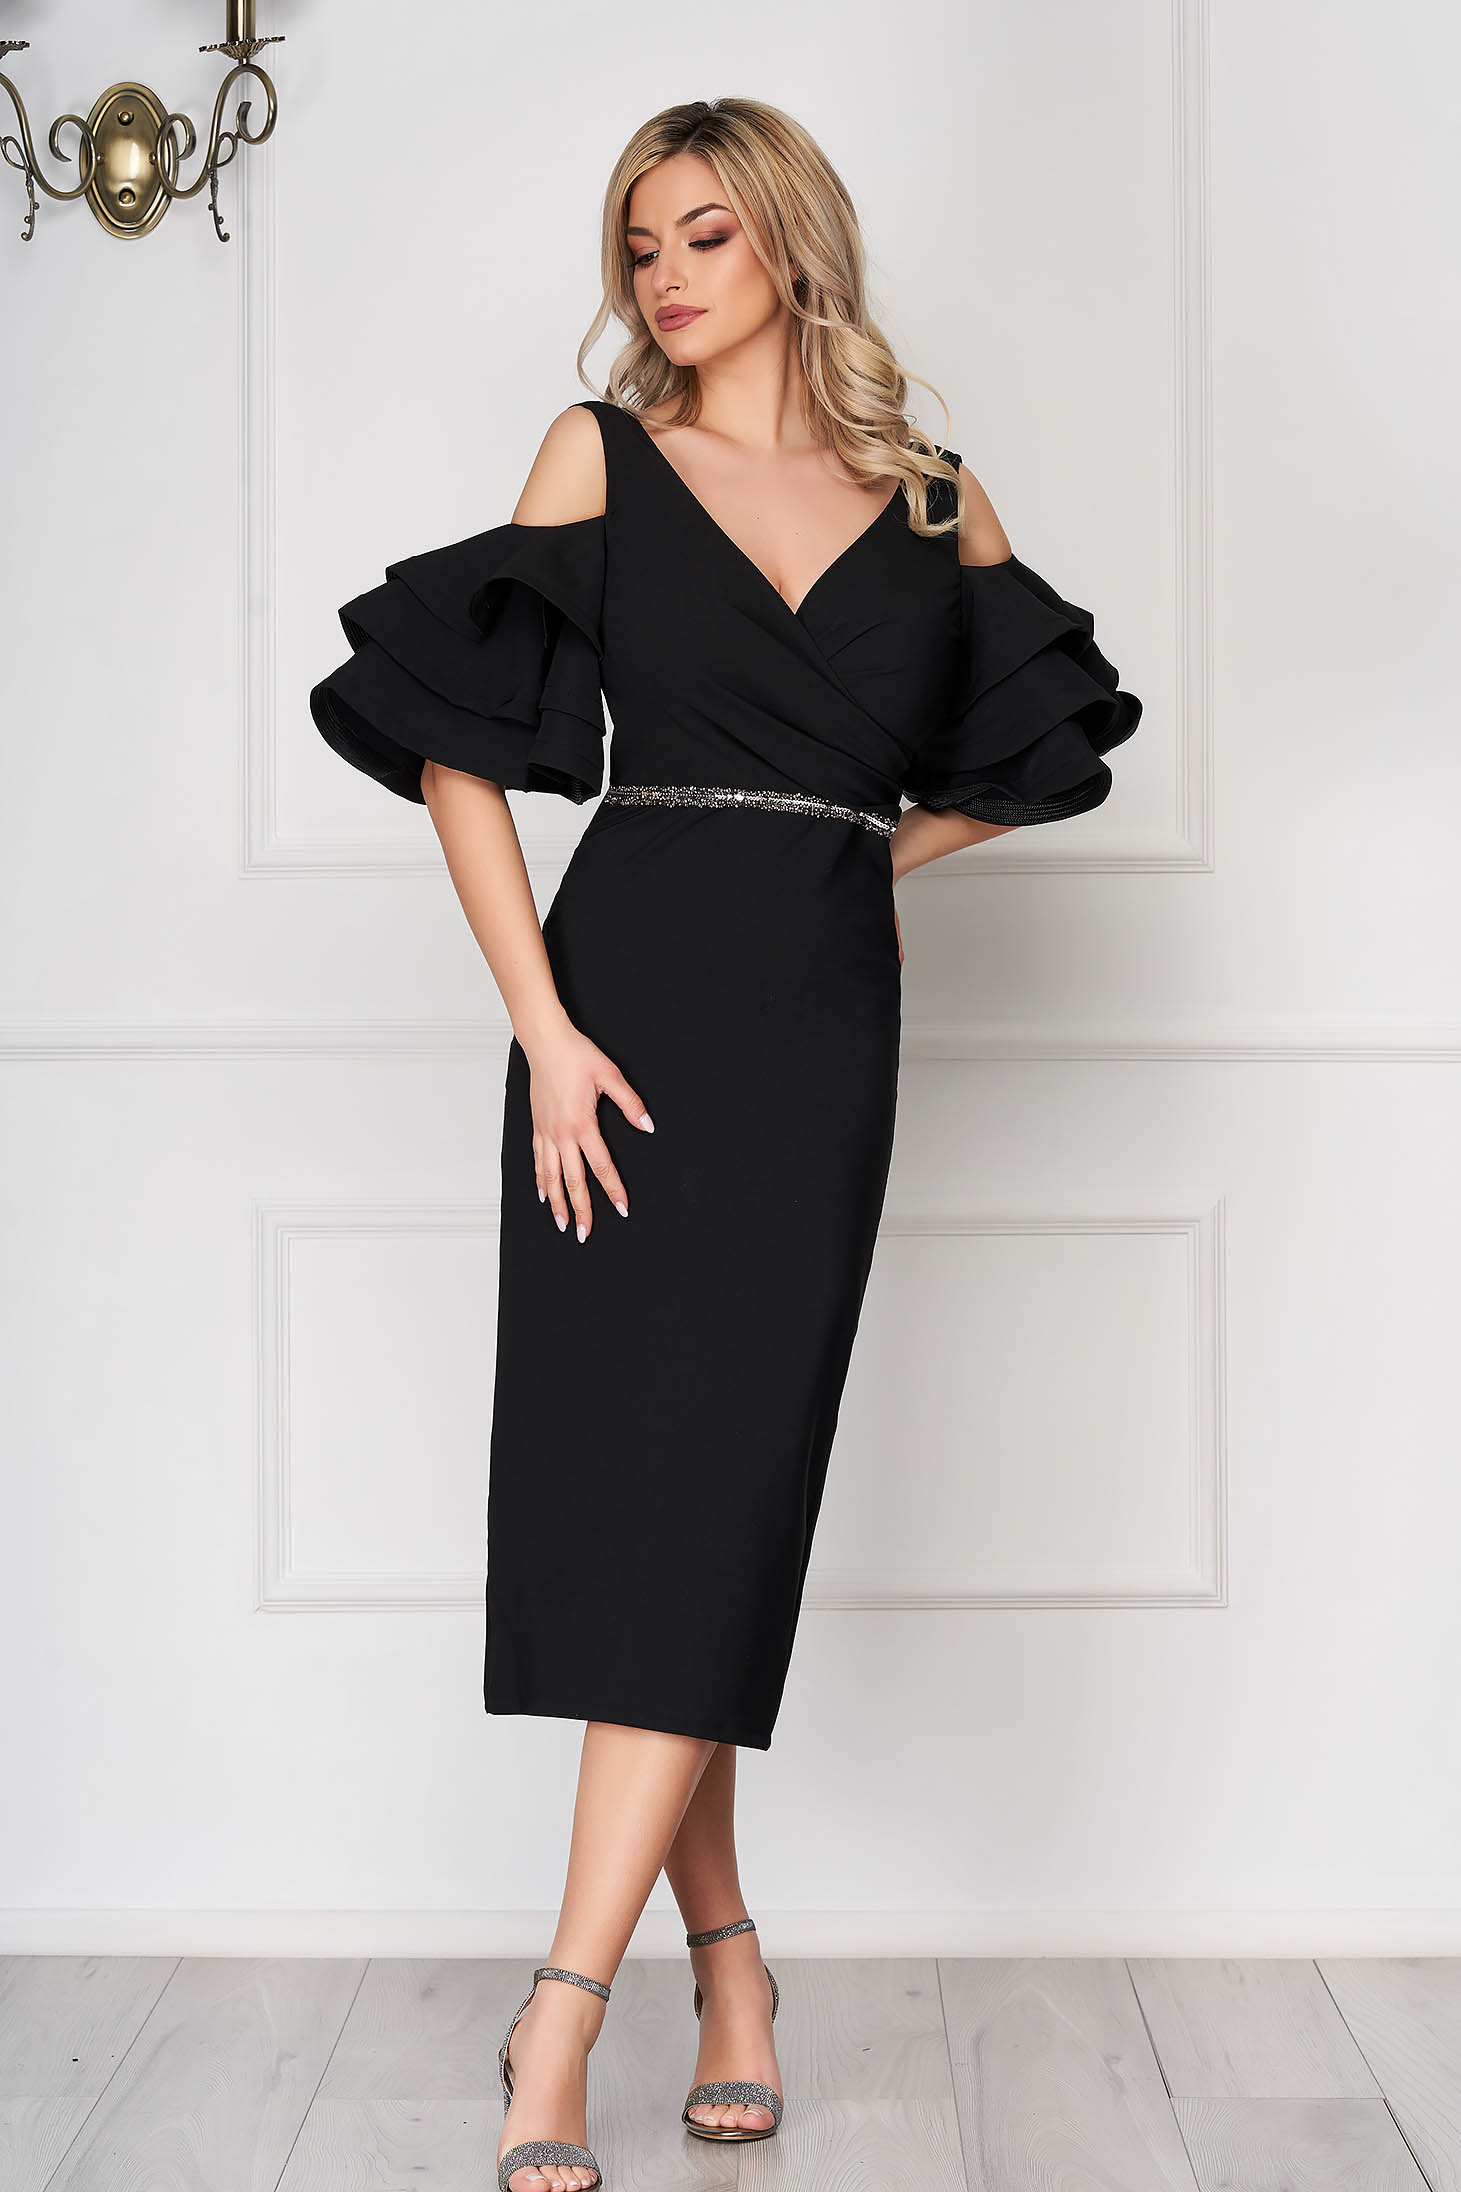 Black dress occasional midi pencil naked shoulders bell sleeves cloth thin fabric